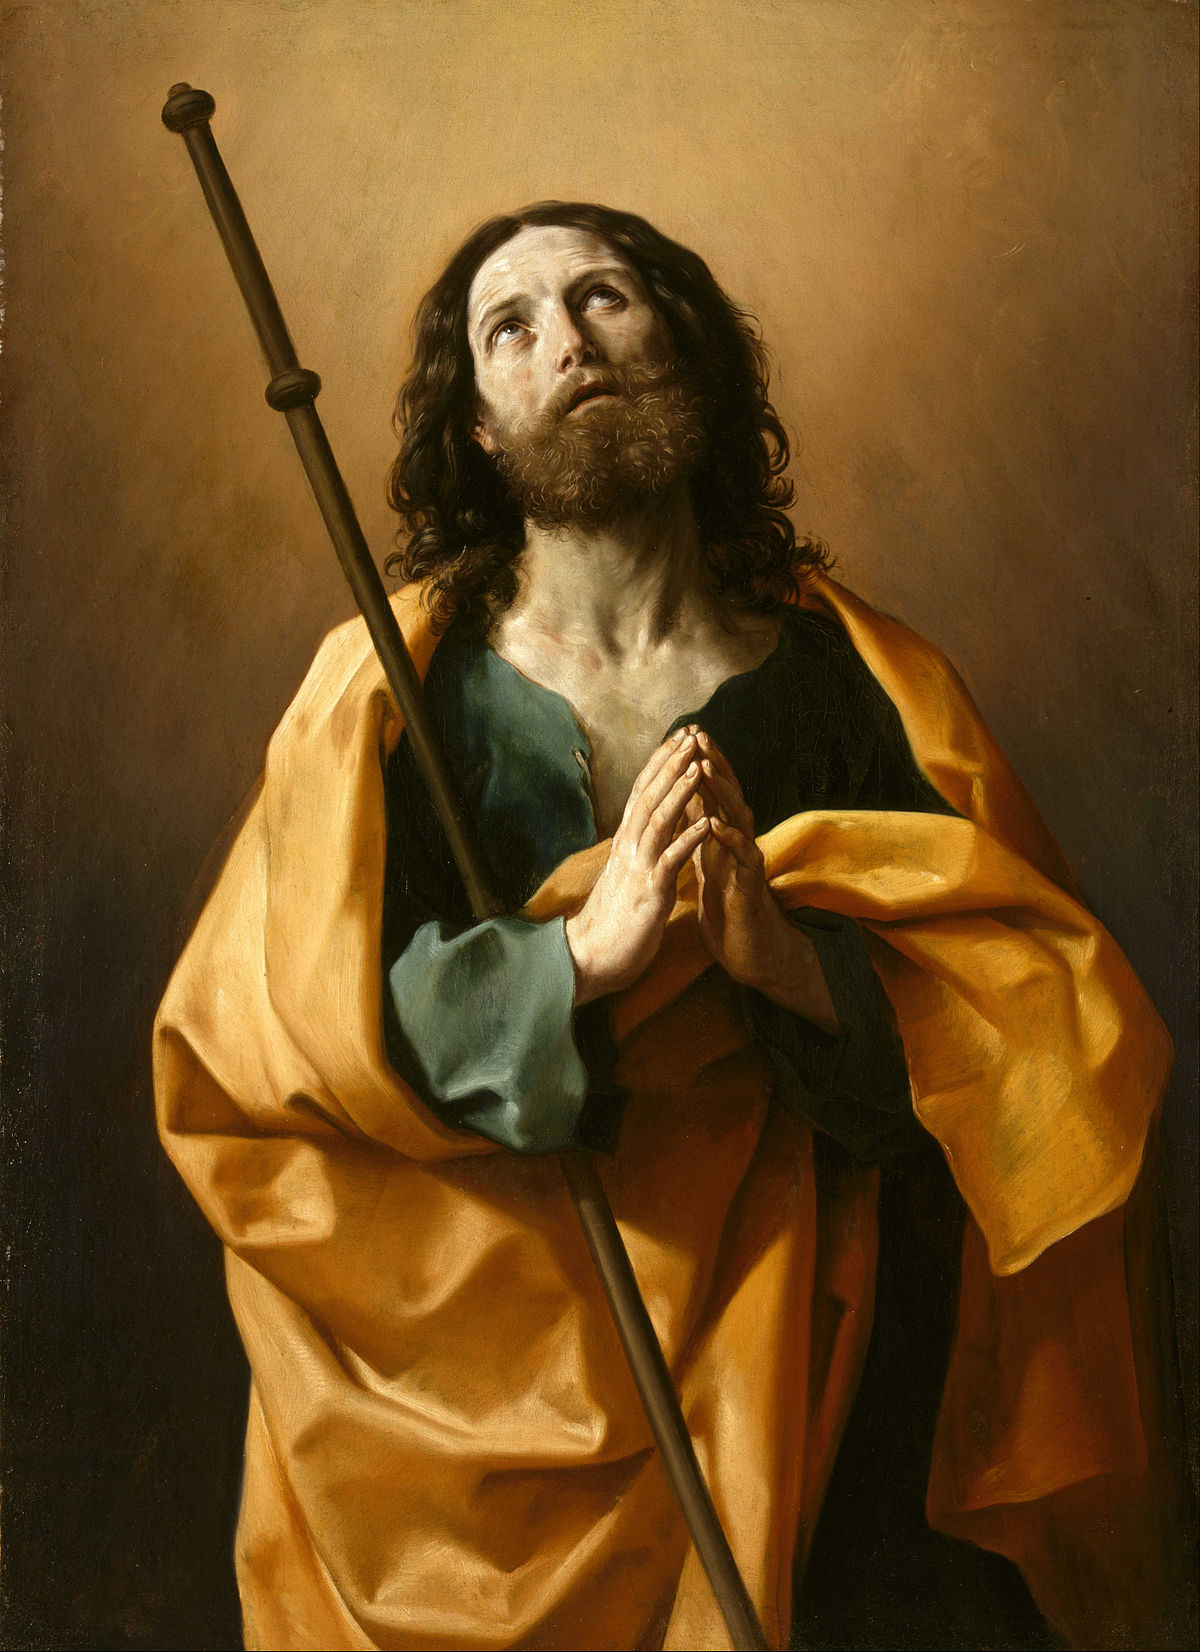 Guido_Reni_-_Saint_James_the_Greater_-_Google_Art_Project.jpg